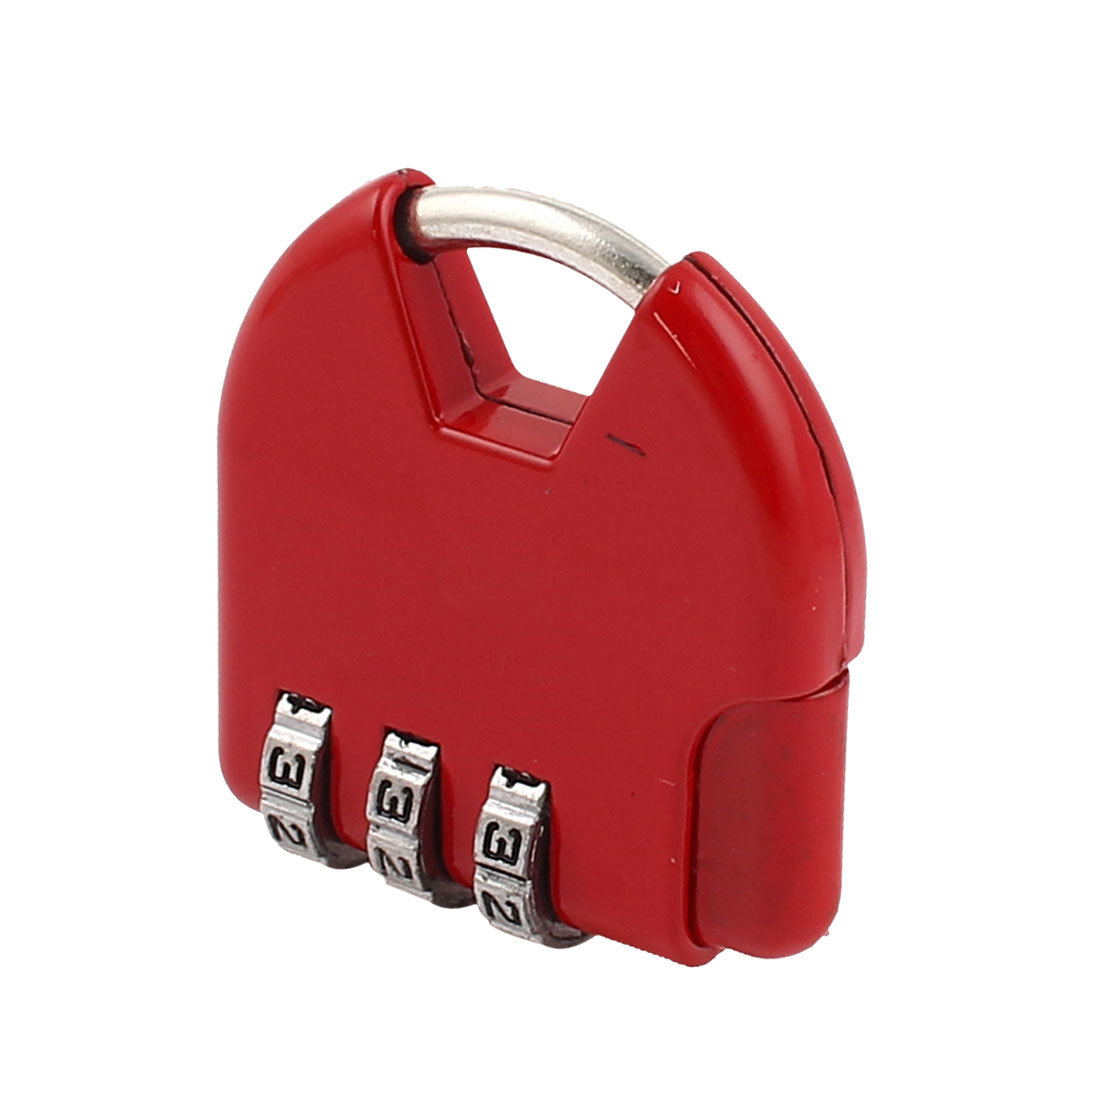 Red 3 Dial Digitals Password Combination Suitcase Safety Padlock Lock